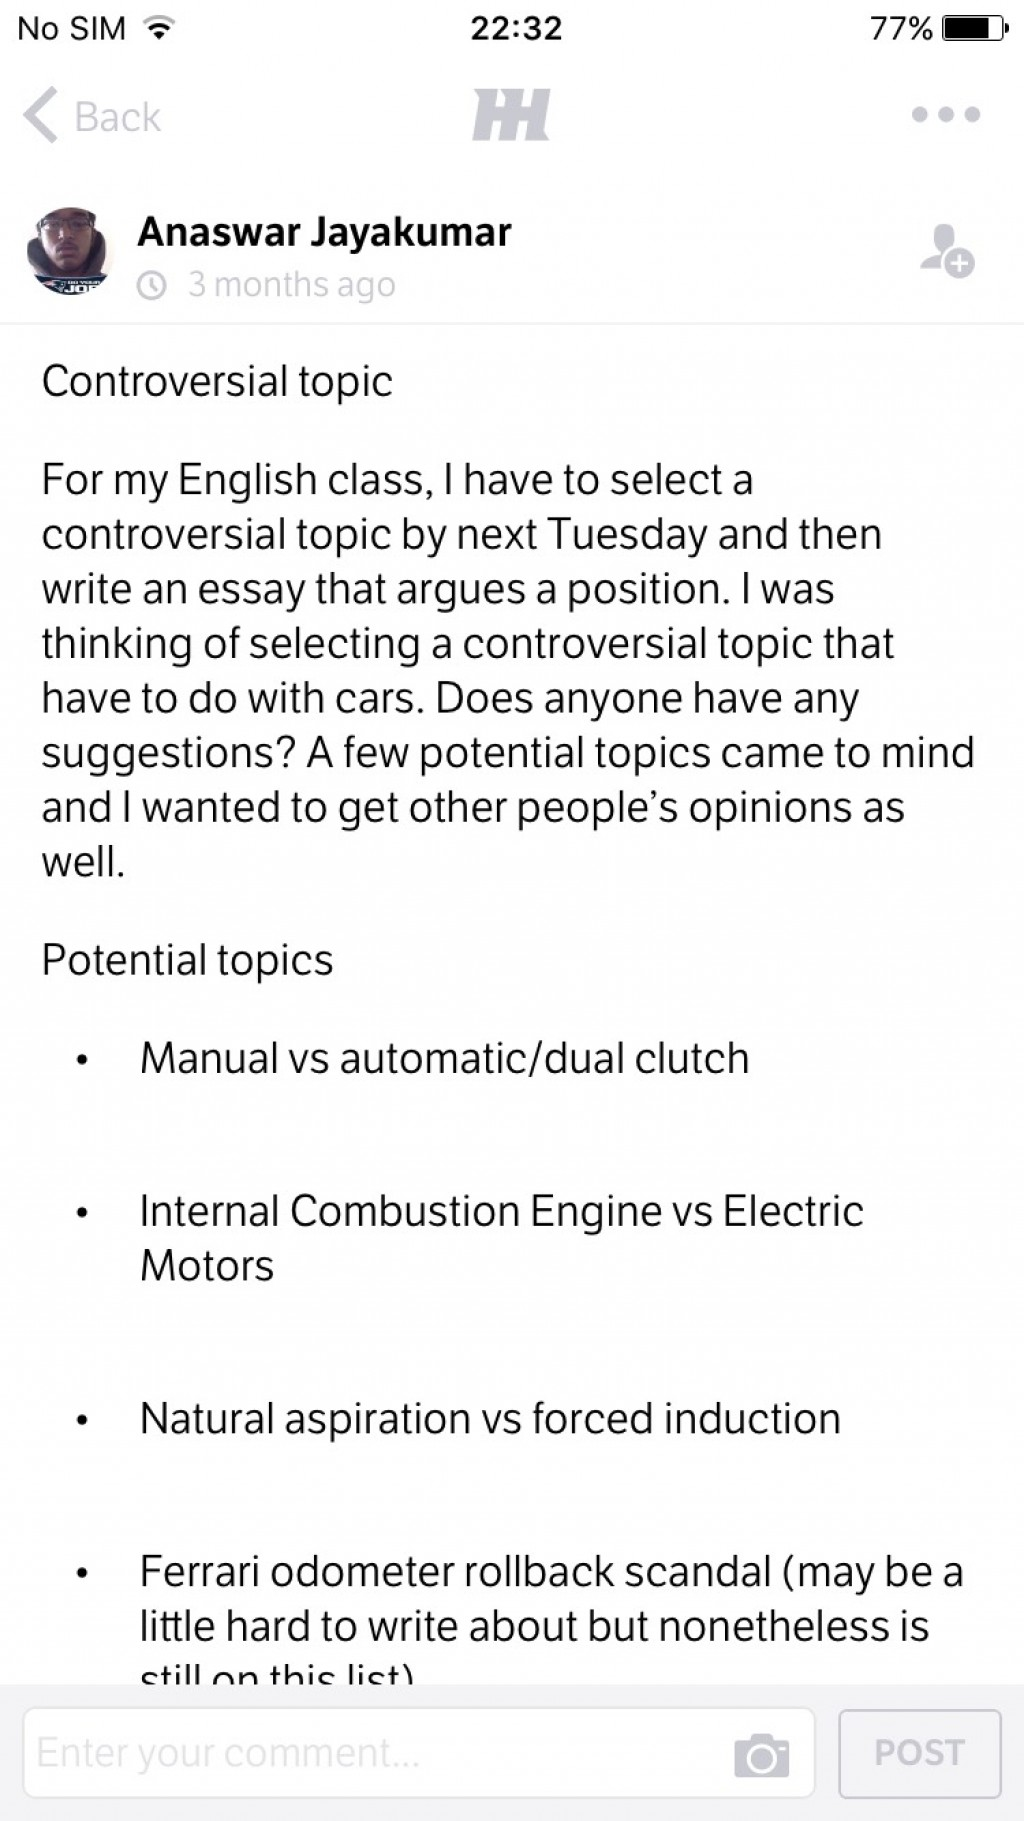 002 Research Paper Controversial Topic Essay Topics Example Outline Issue20 Middle School Phenomenal Questions Science Large